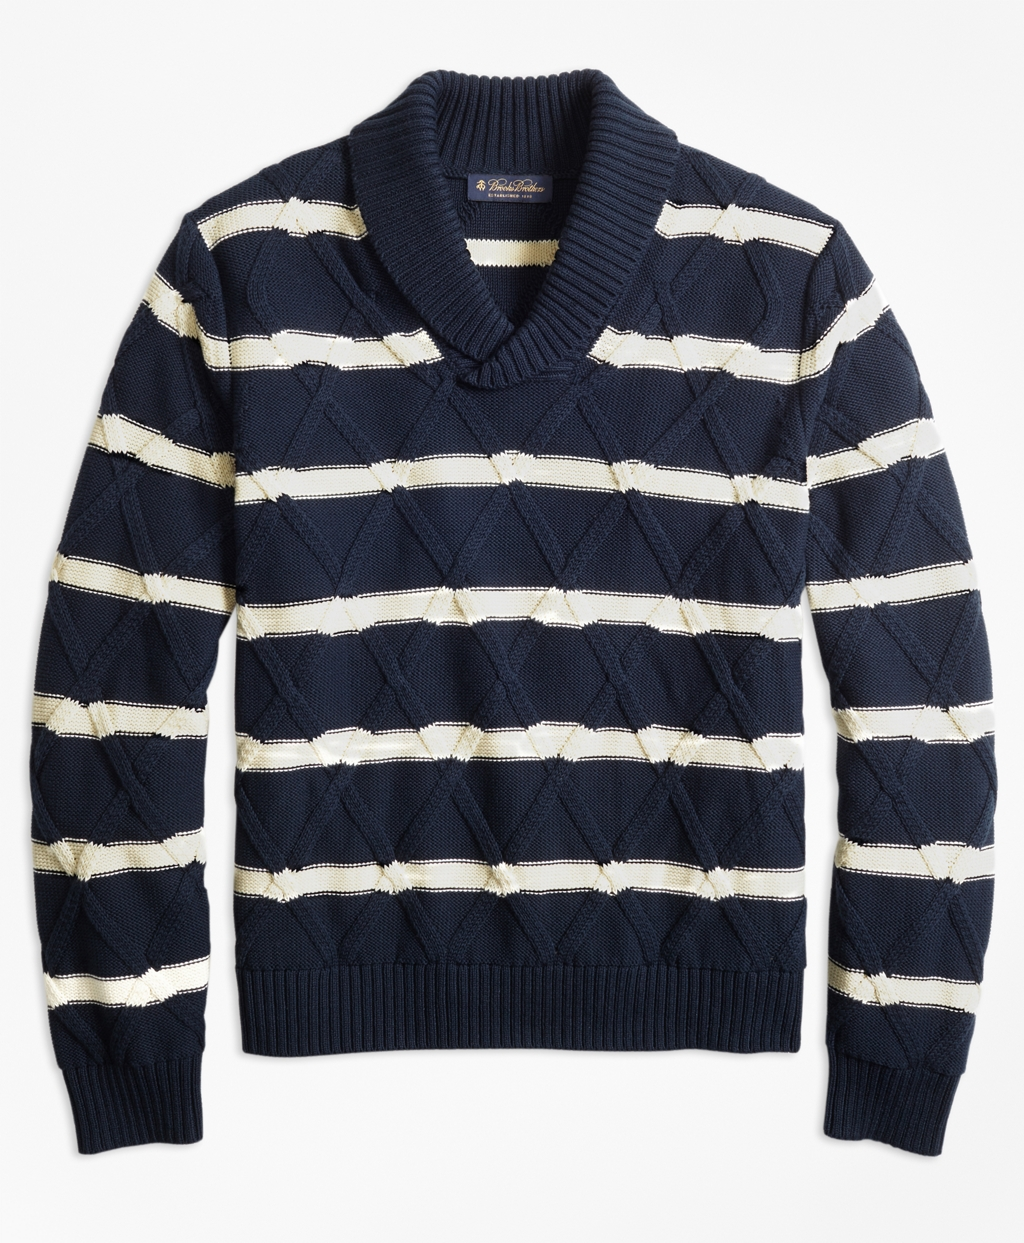 1920s Mens Sweaters, Pullovers, Cardigans Brooks Brothers Mens Nautical Stripe Shawl Collar Sweater $198.00 AT vintagedancer.com